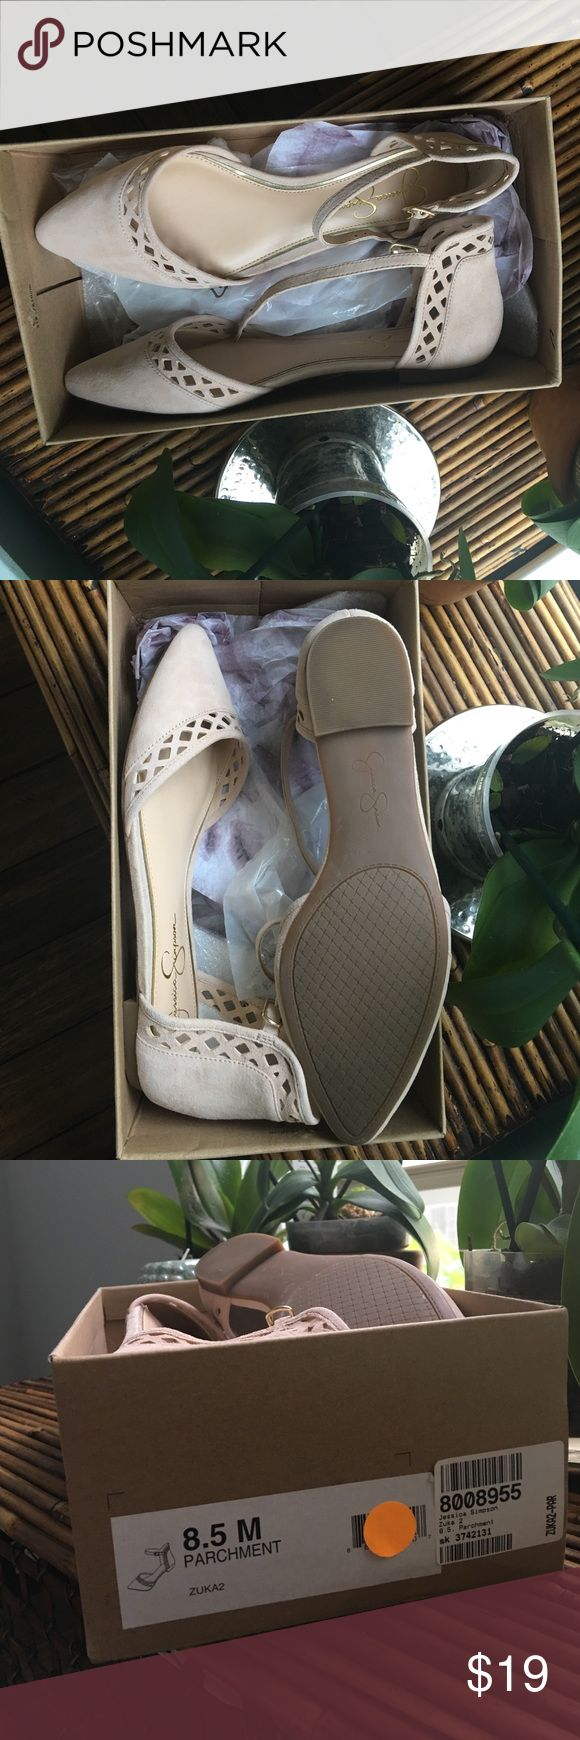 Jessica Simpson nude flats Brand new in box Jessica Simpson Shoes Slippers